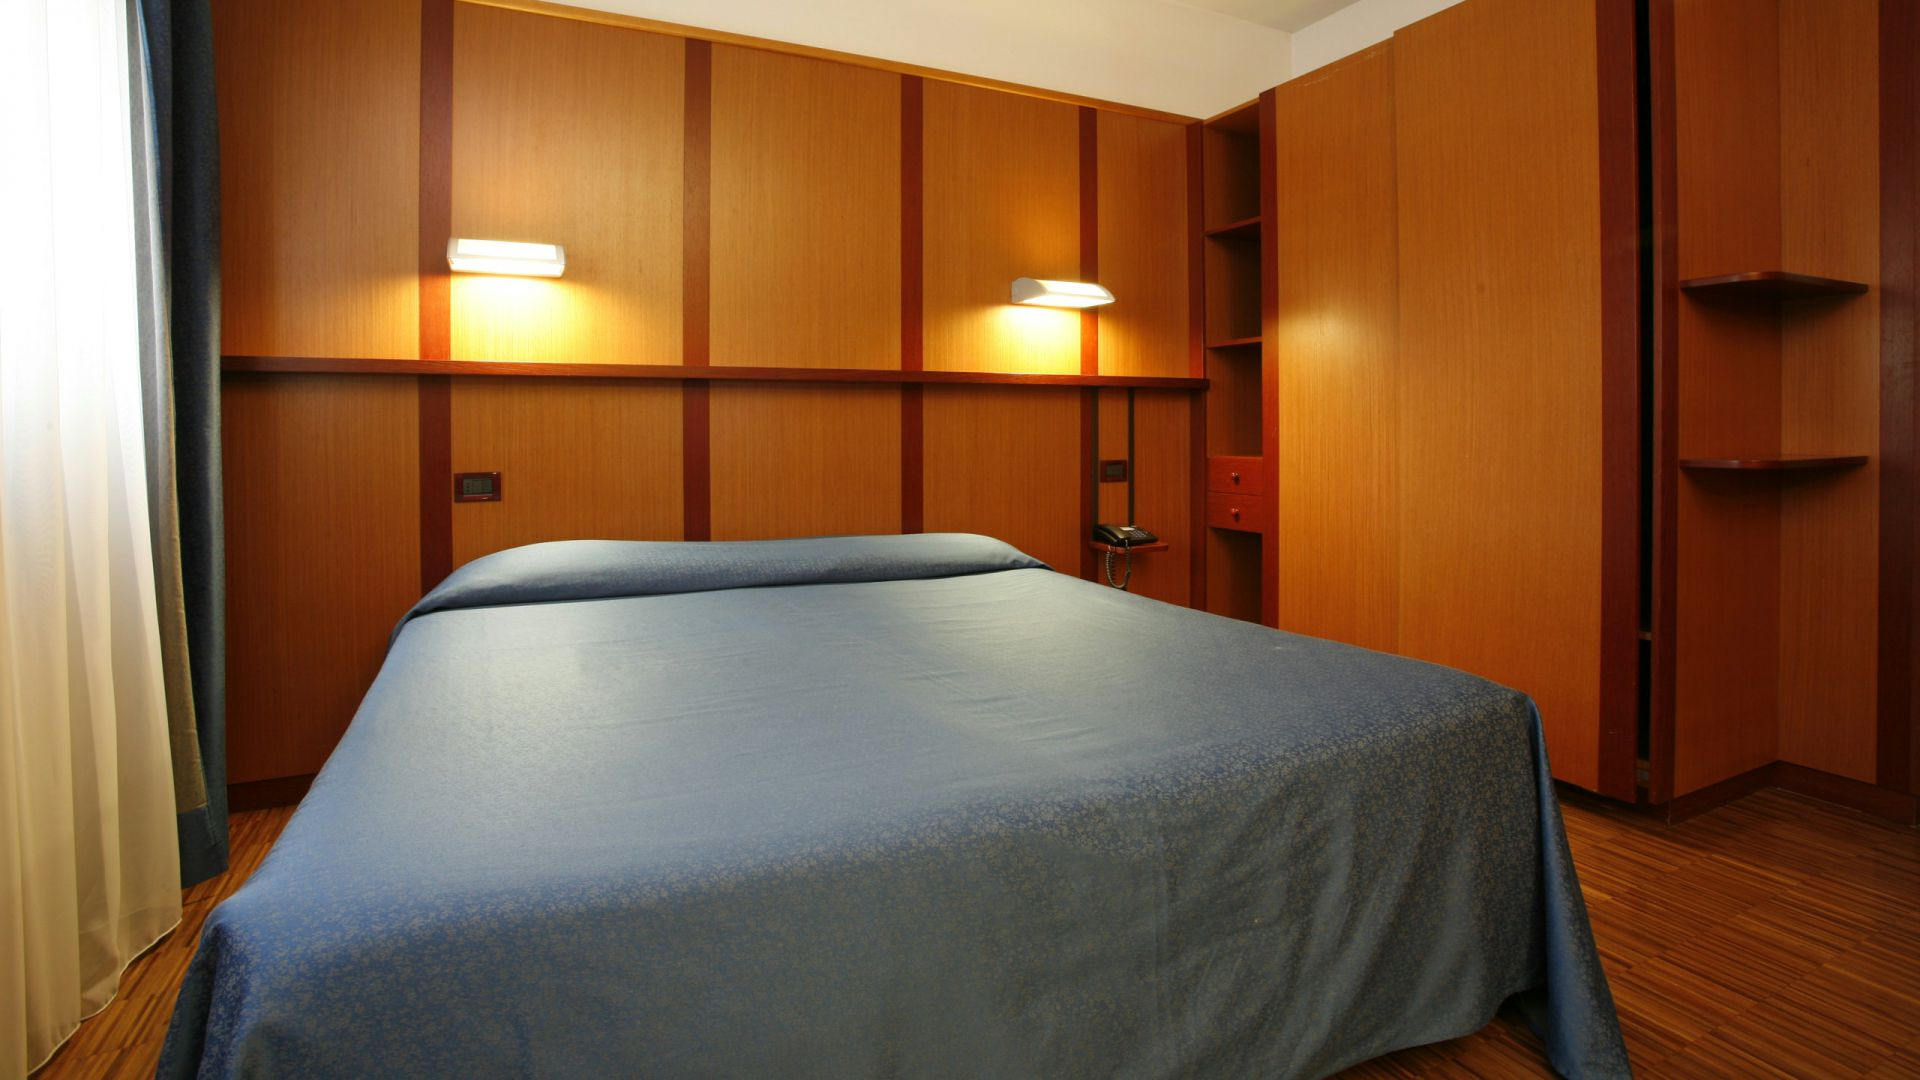 imperial-hotel-bologna-room-06